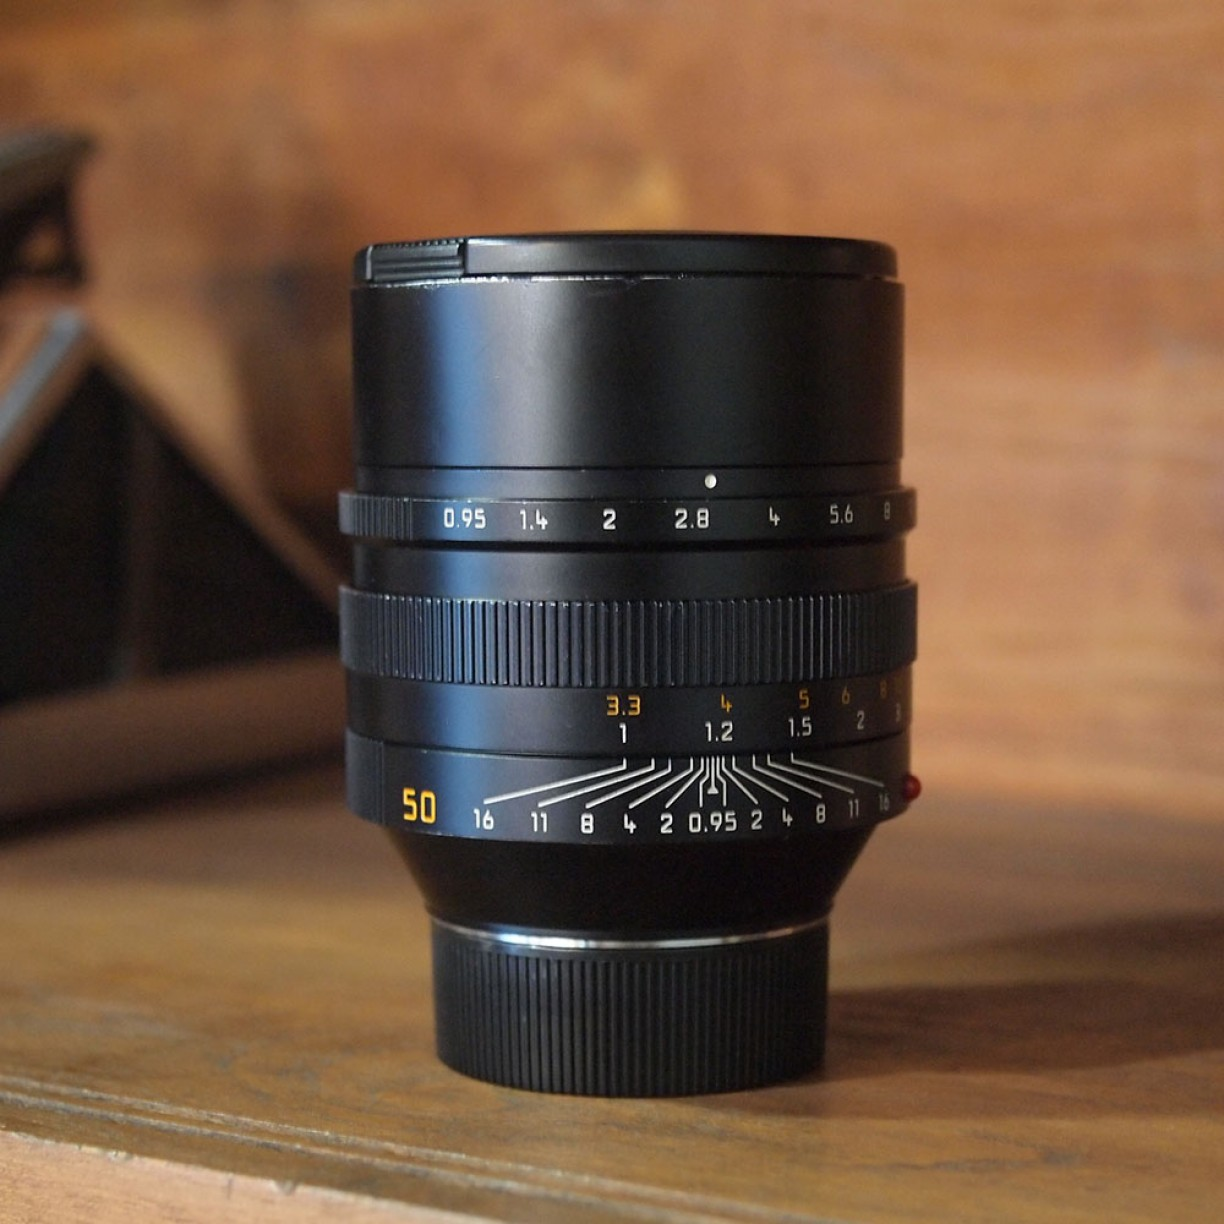 Leica Noctilux - M 50MM F0.95 - GOOD CONDITION - Harga 112,5JT |5541|